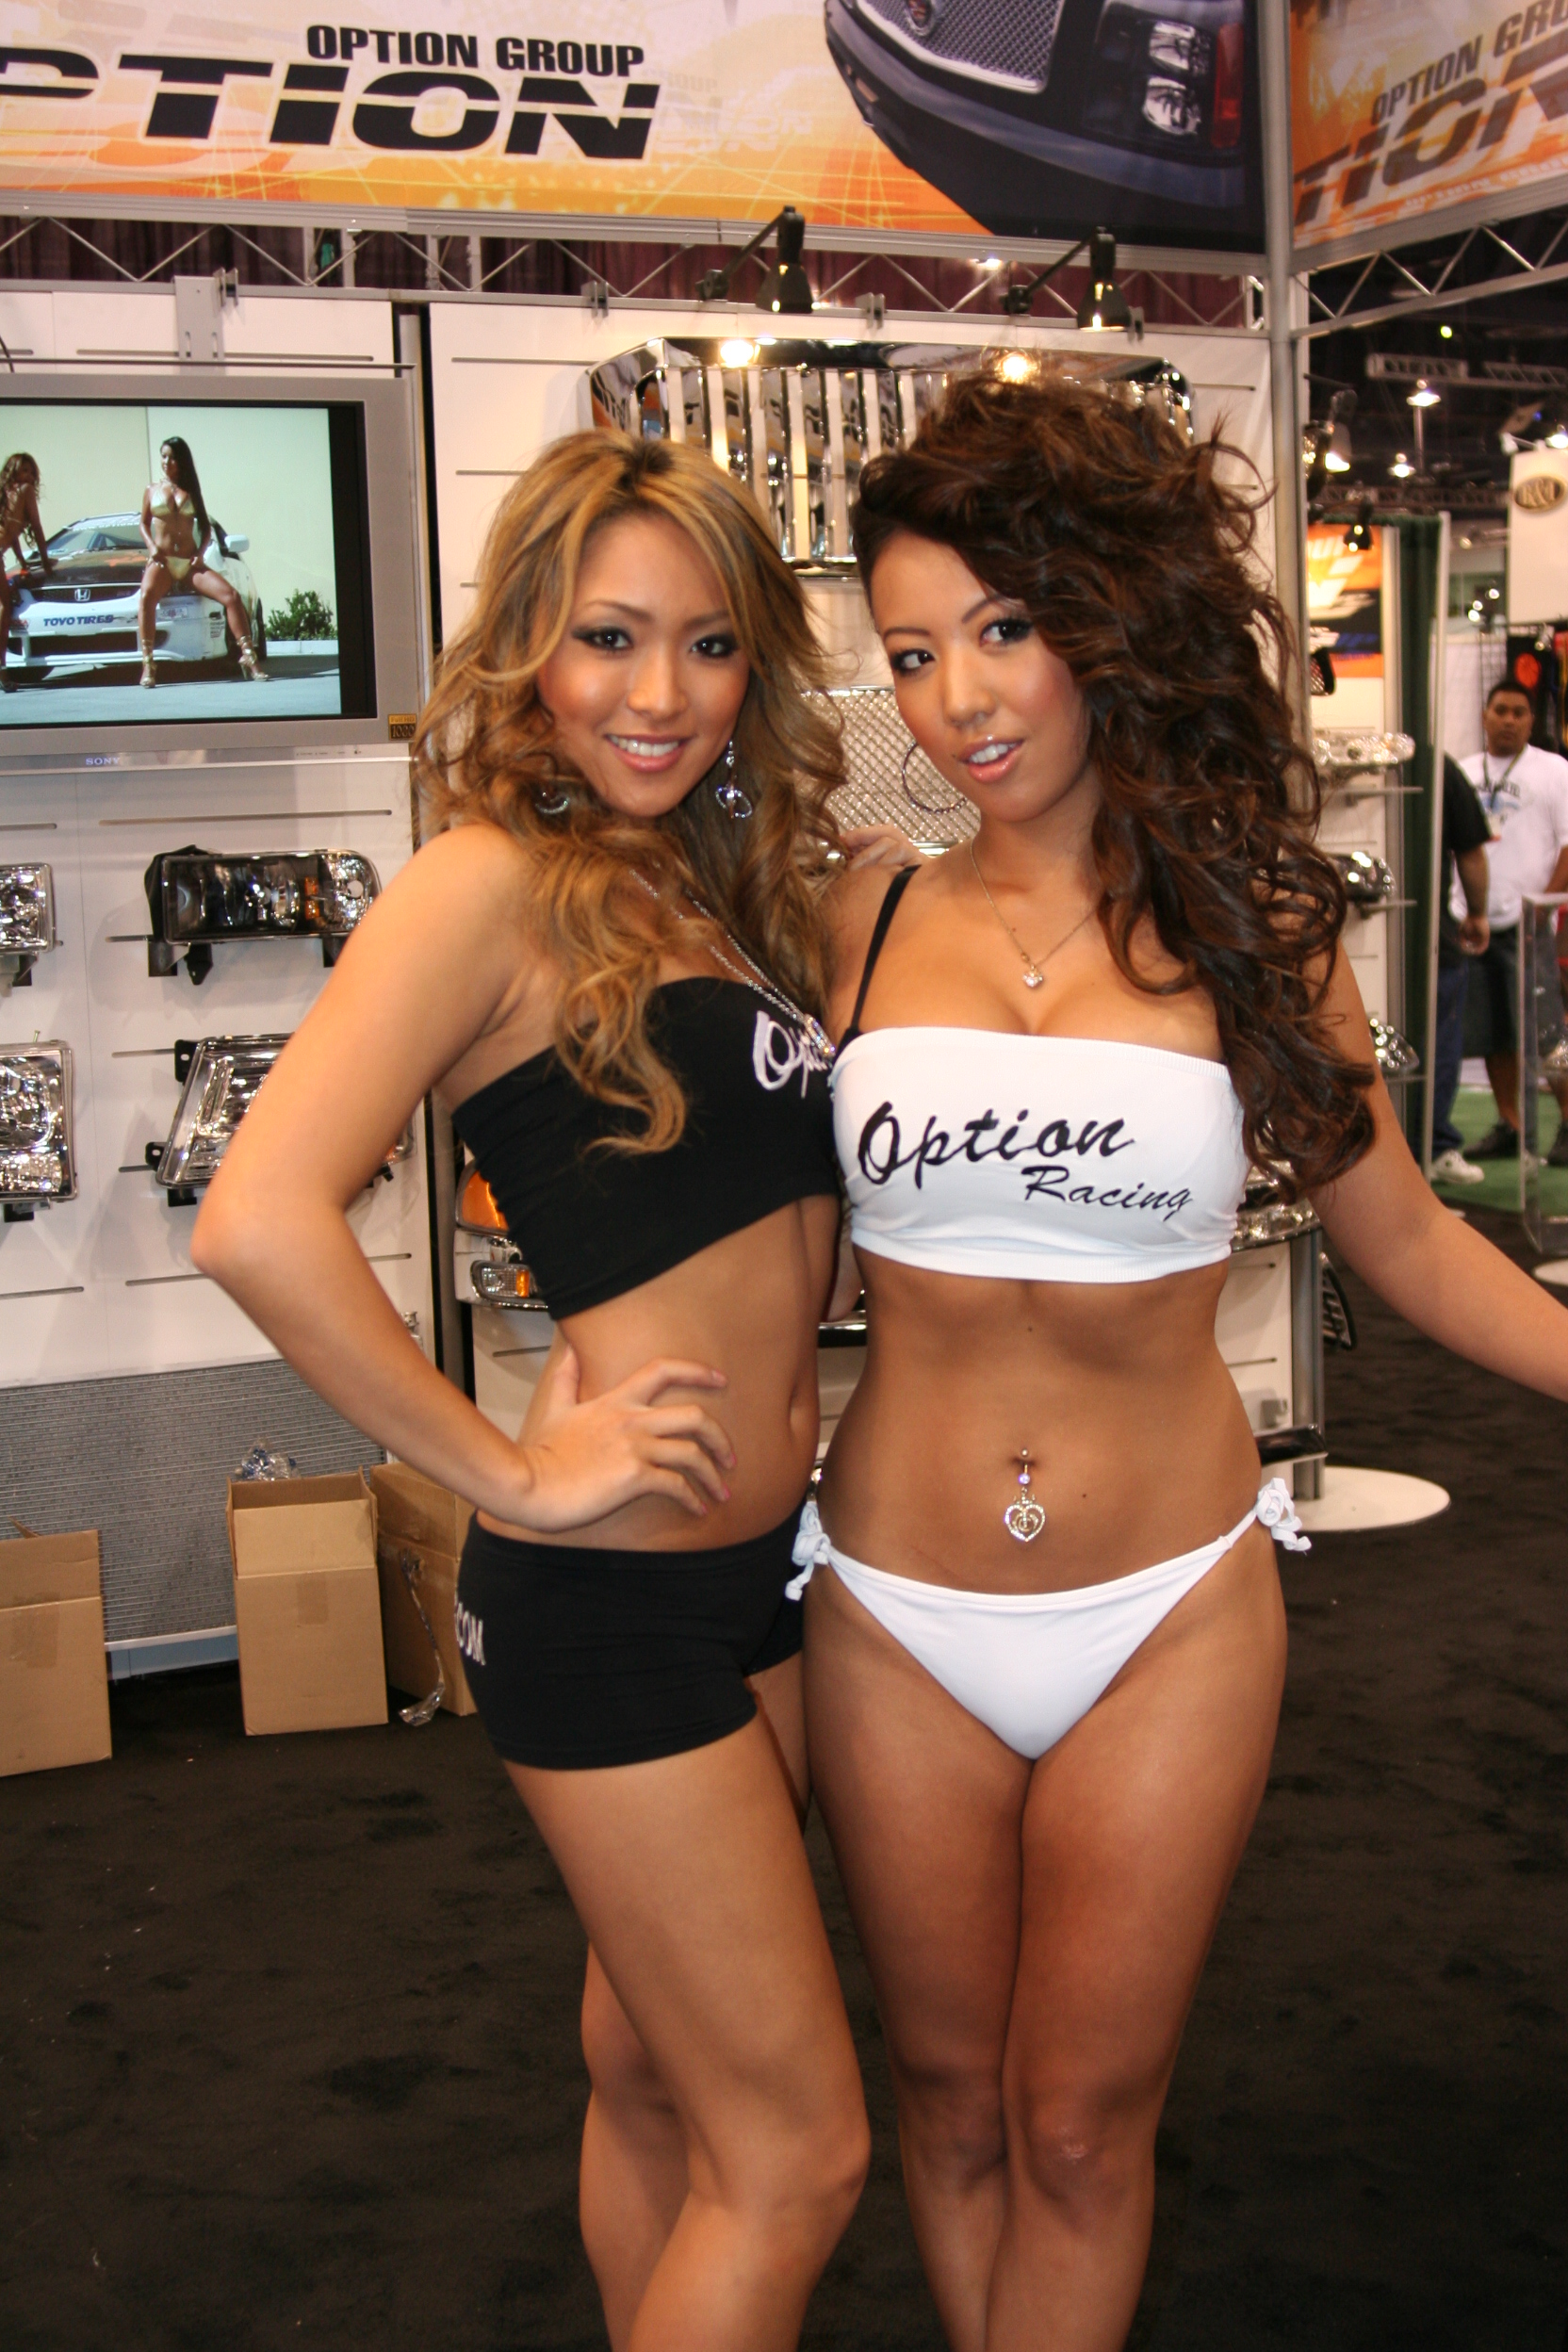 File Option Racing Girls Sema Show 2007 Jpg Wikimedia